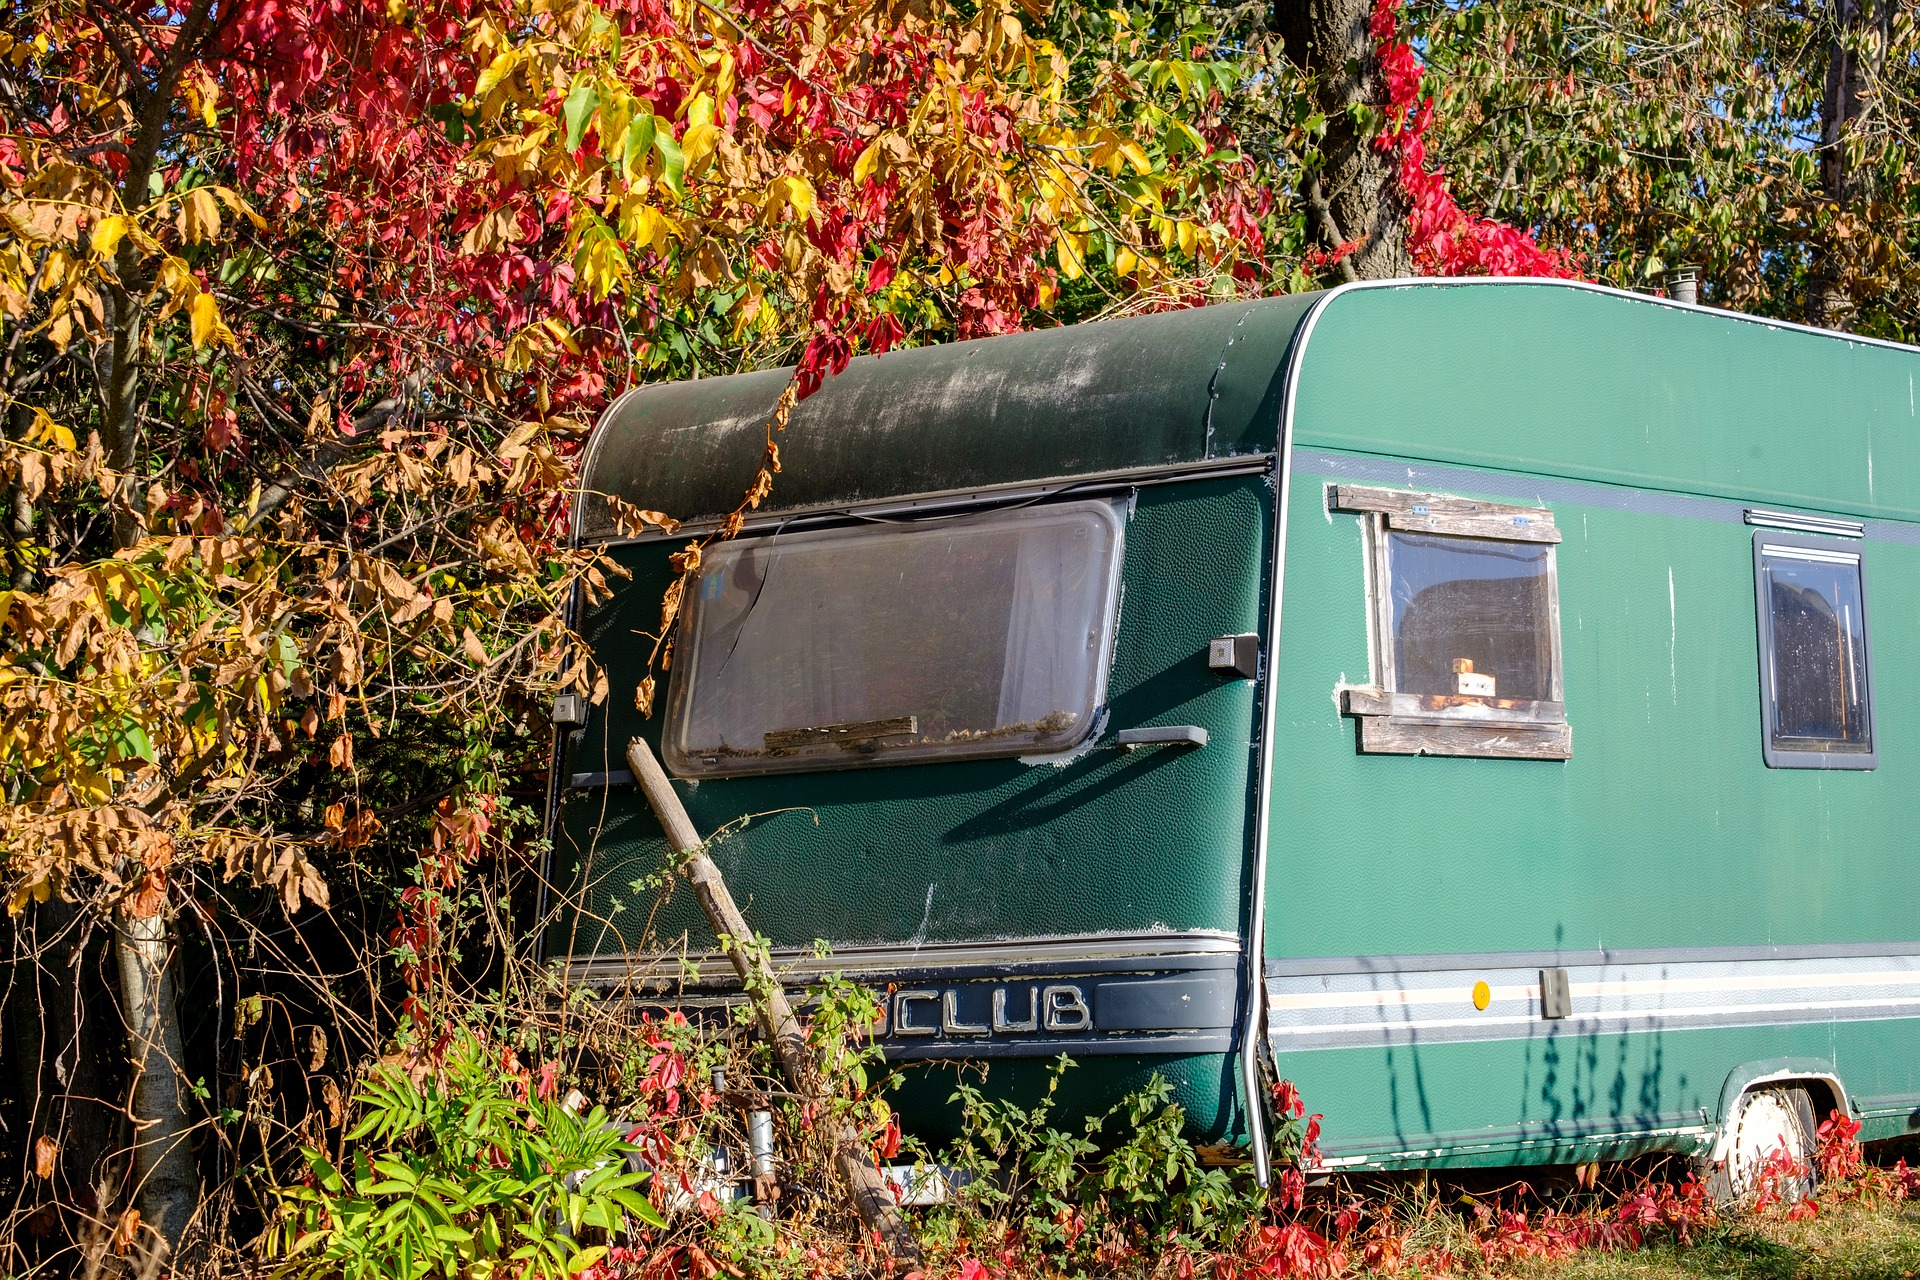 Show off fall beauty of your campground